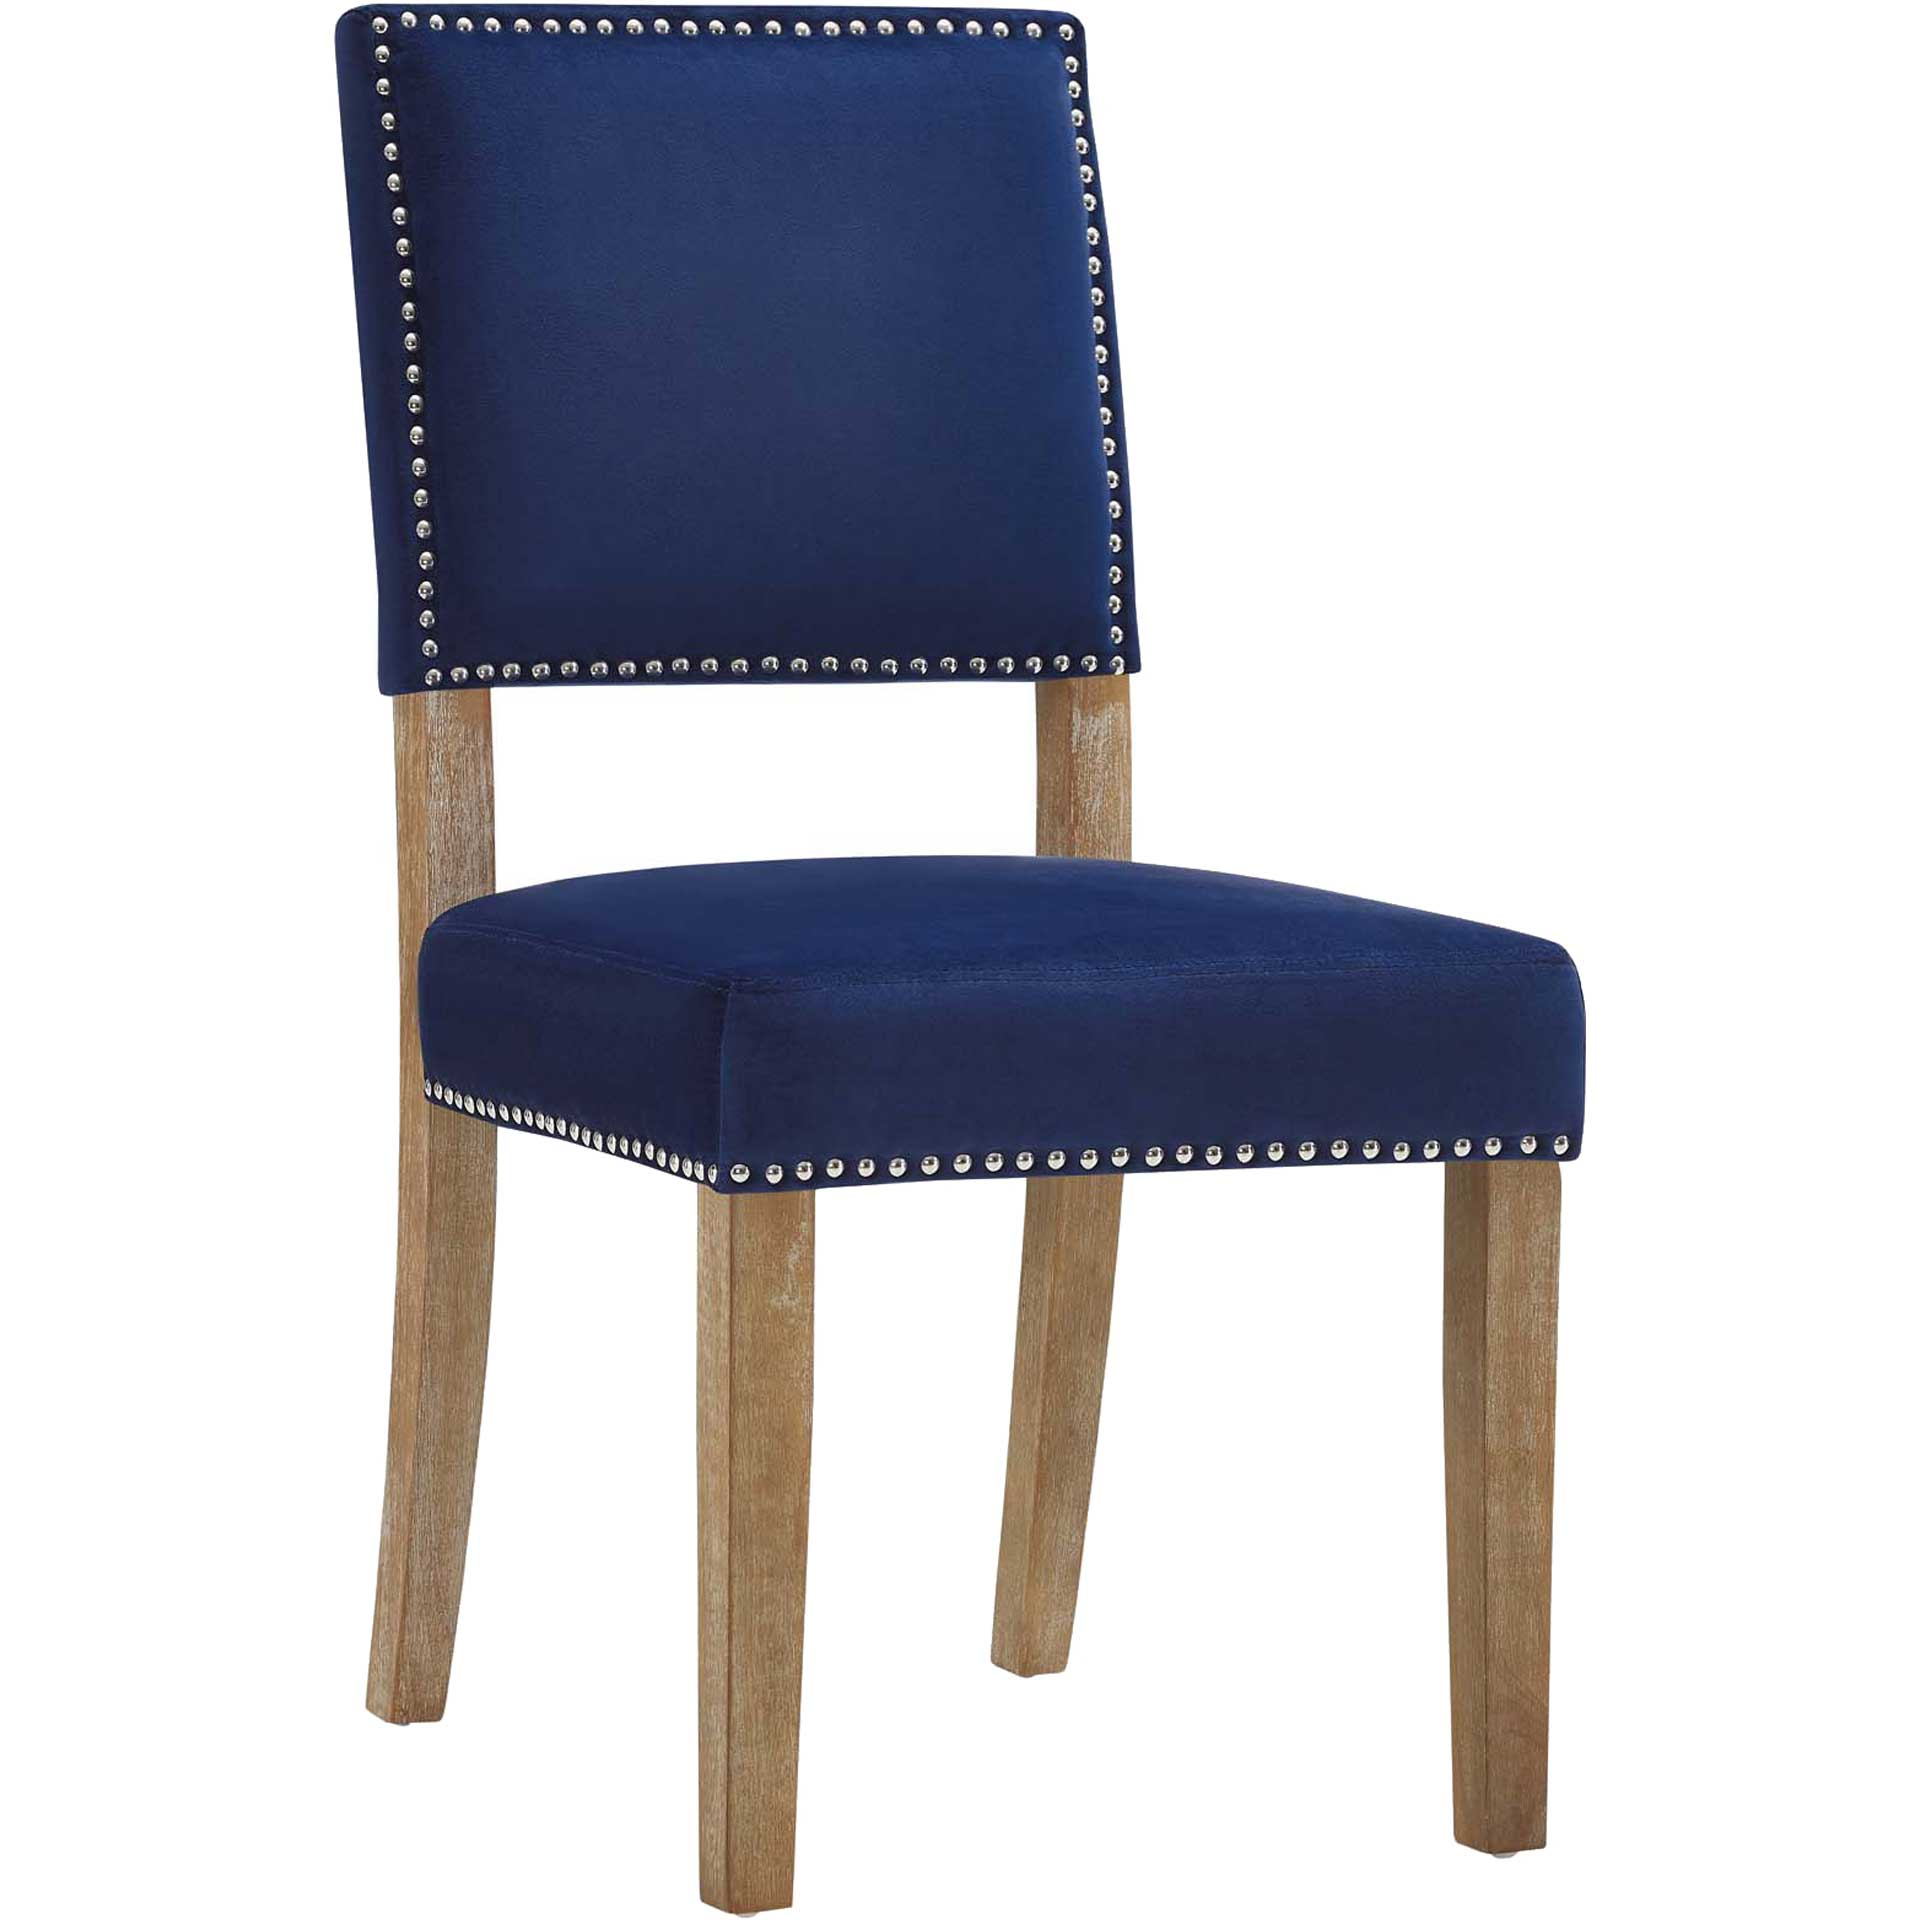 Orwen Wood Dining Chair Navy